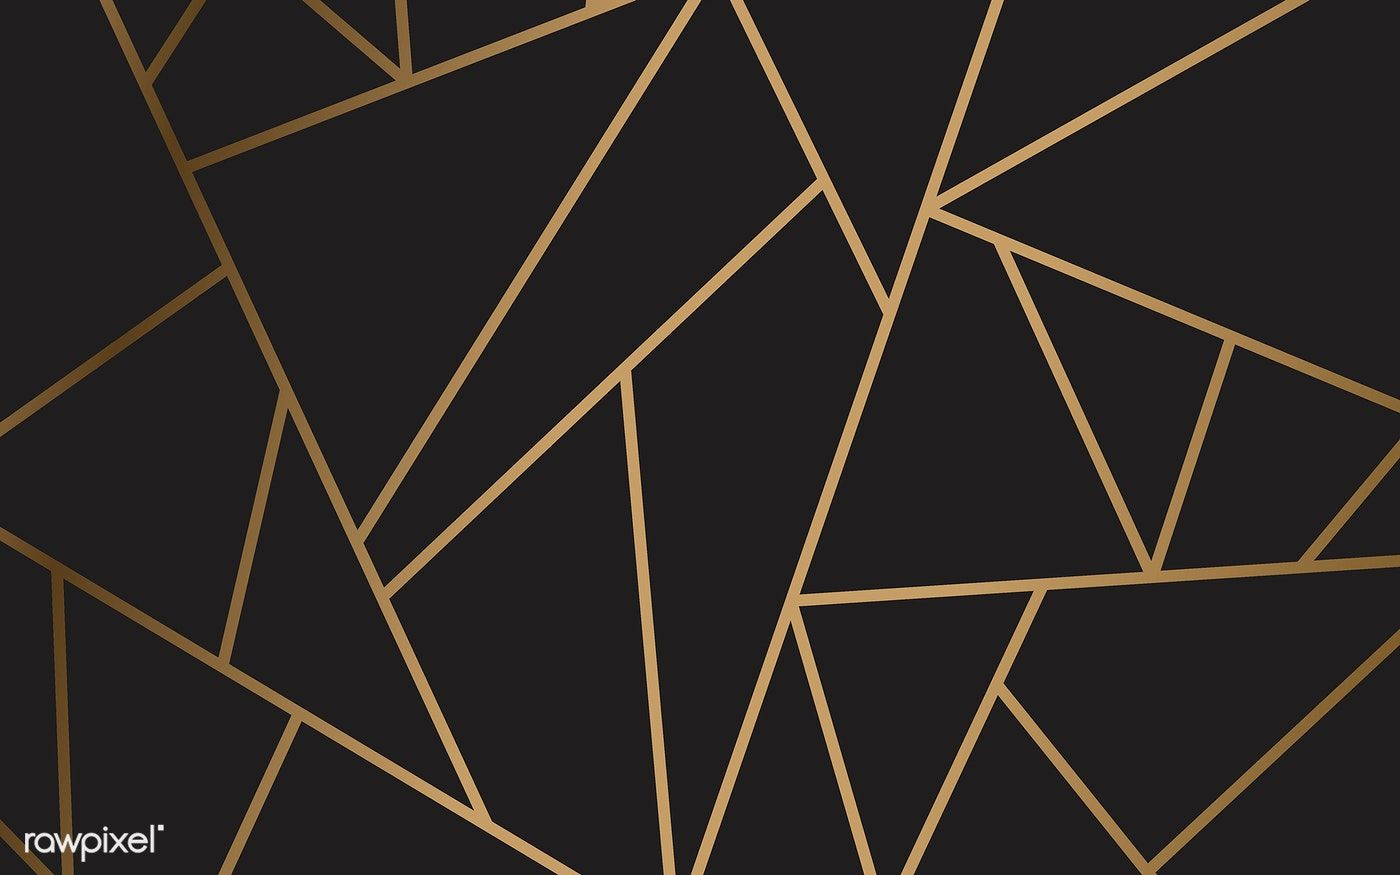 Modern Mosaic Wallpaper In Black And Gold Free Image By Rawpixel